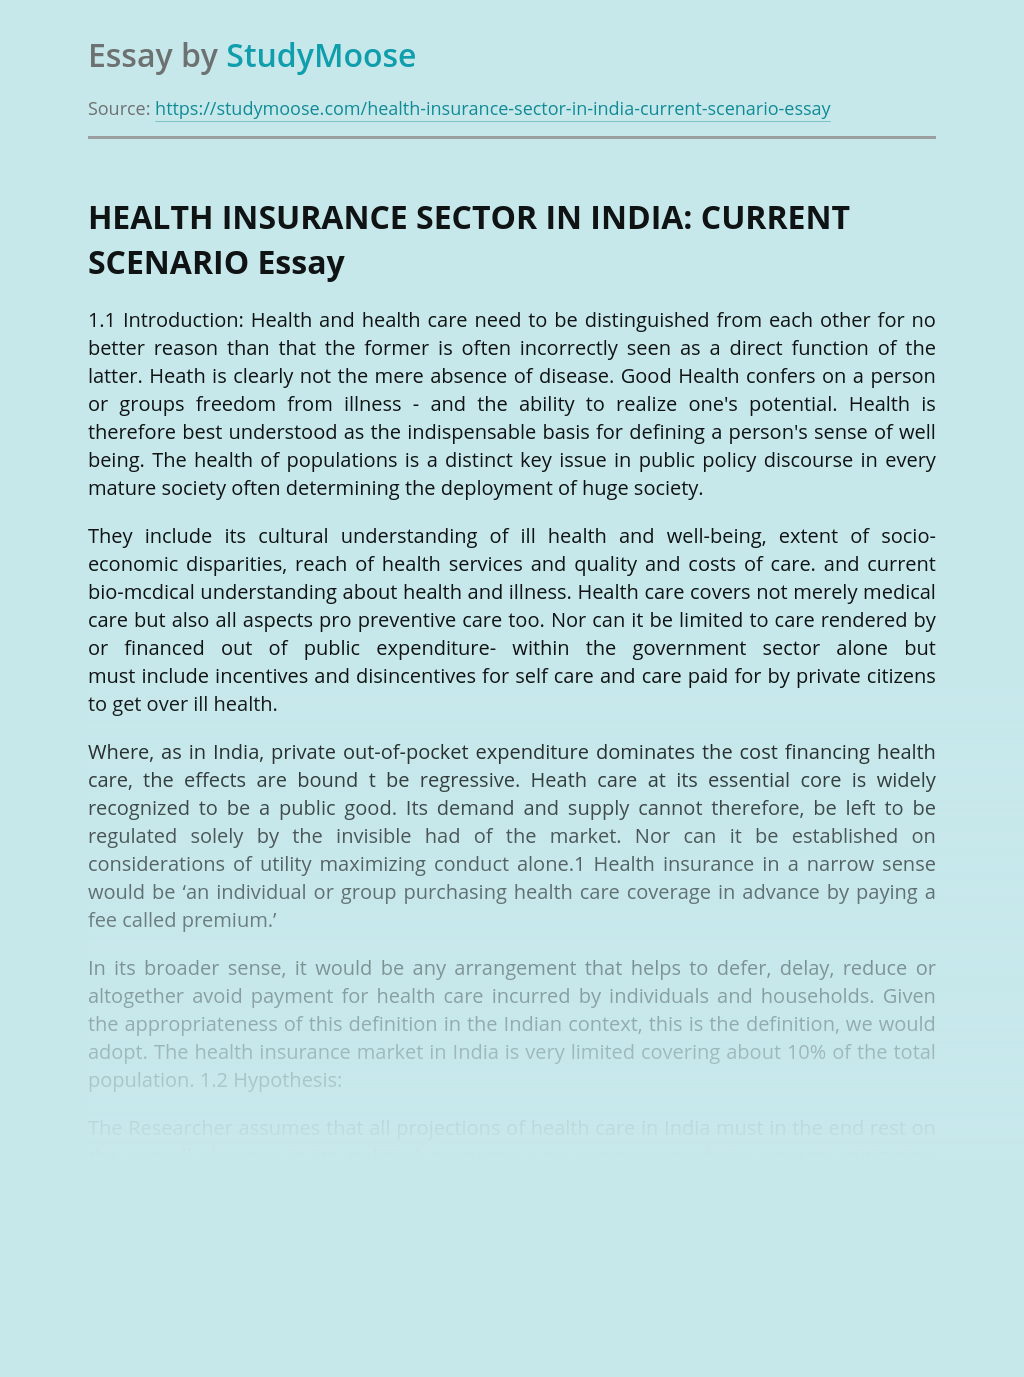 HEALTH INSURANCE SECTOR IN INDIA: CURRENT SCENARIO